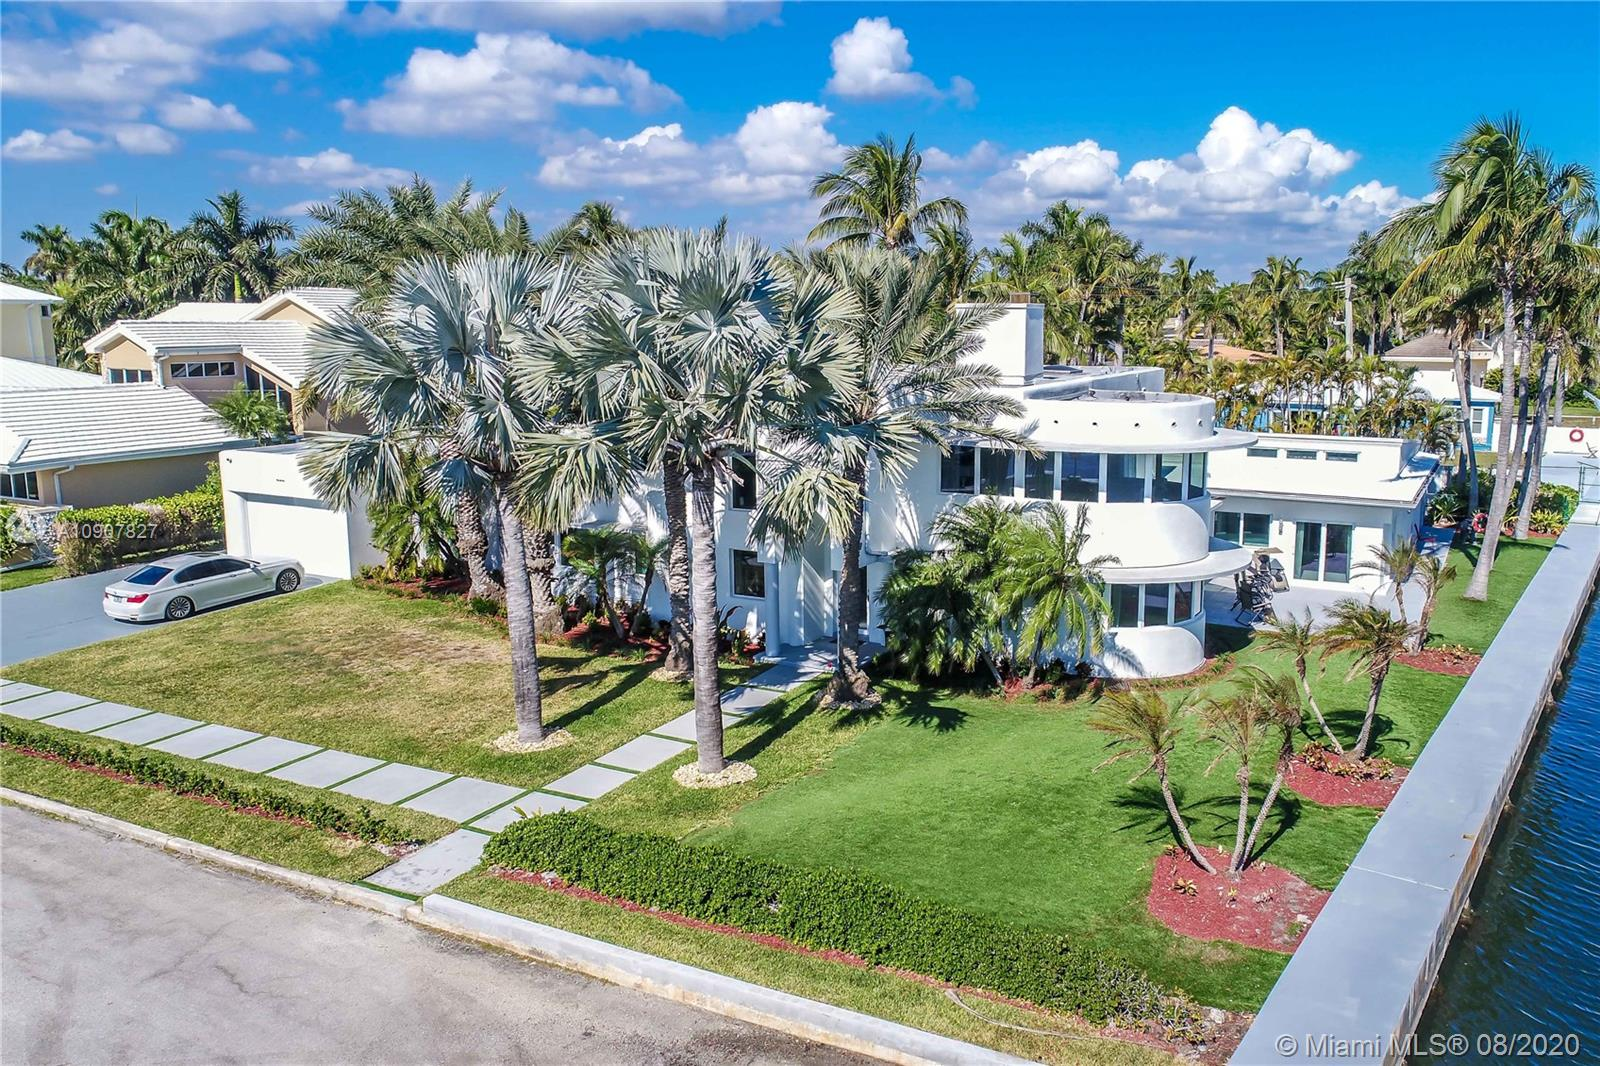 Just Reduced! PERFECT SHORT TERM RENTAL AIR B AND B. STUNNING DIRECT INTRACOASTAL WATERFRONT ESTATE WITH BOAT DOCK AND 16KLB LIFT ON DEEP WATER WITH NO FIXED BRIDGES. PROFESSIONALLY DESIGNED MASTERPIECE IN HOLLYWOOD LAKES. 2 MASTER SUITES UPSTAIRS AND 3 BEDROOMS DOWNSTAIRS. IMPACT DOORS AND WINDOWS. BEAUTIFUL WATERFRONT SETTING. VERY UNIQUE INDOOR HEATED POOL WITH A FULL BATH. WINE CELLAR~OPEN FLOORPAN~STAINLESS STEEL AND WOOD STAIRCASE~SCENIC VIEWS EVERYWHERE COMPLETE WITH AN OCEAN VIEW FROM THE MASTER BEDROOM. NEW KITCHEN WITH EUROPEAN CABINETS, WATERFORD QUARTZ COUNTERTOPS, VIKING APPLIANCES~FORMAL DINING~BAR AREA GREAT FOR ENTERTAINING~ONE BEDROOM DOWNSTAIRS CAN BE USED AS CABANA, Easy to show, will not last. Perfect location for an AIR B AND B PROPERTY